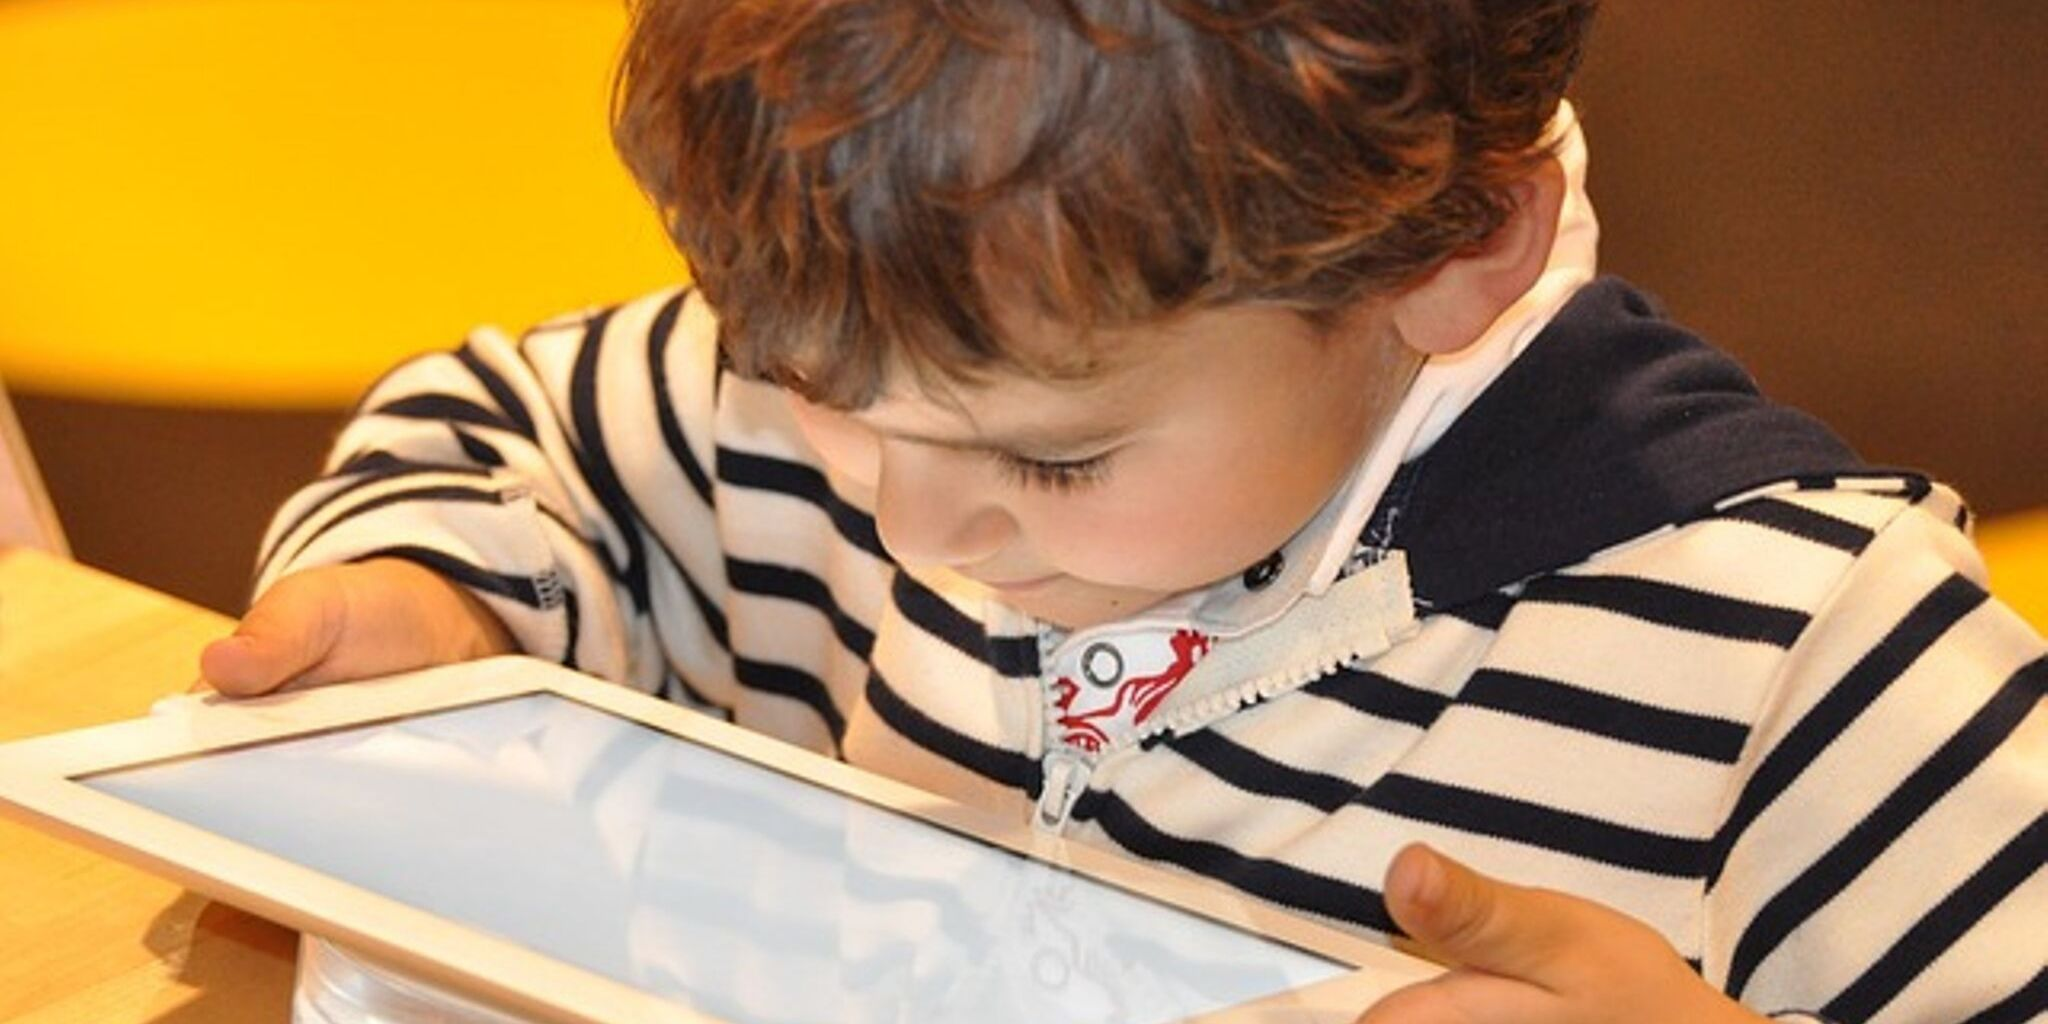 Kids and technology: pros and cons